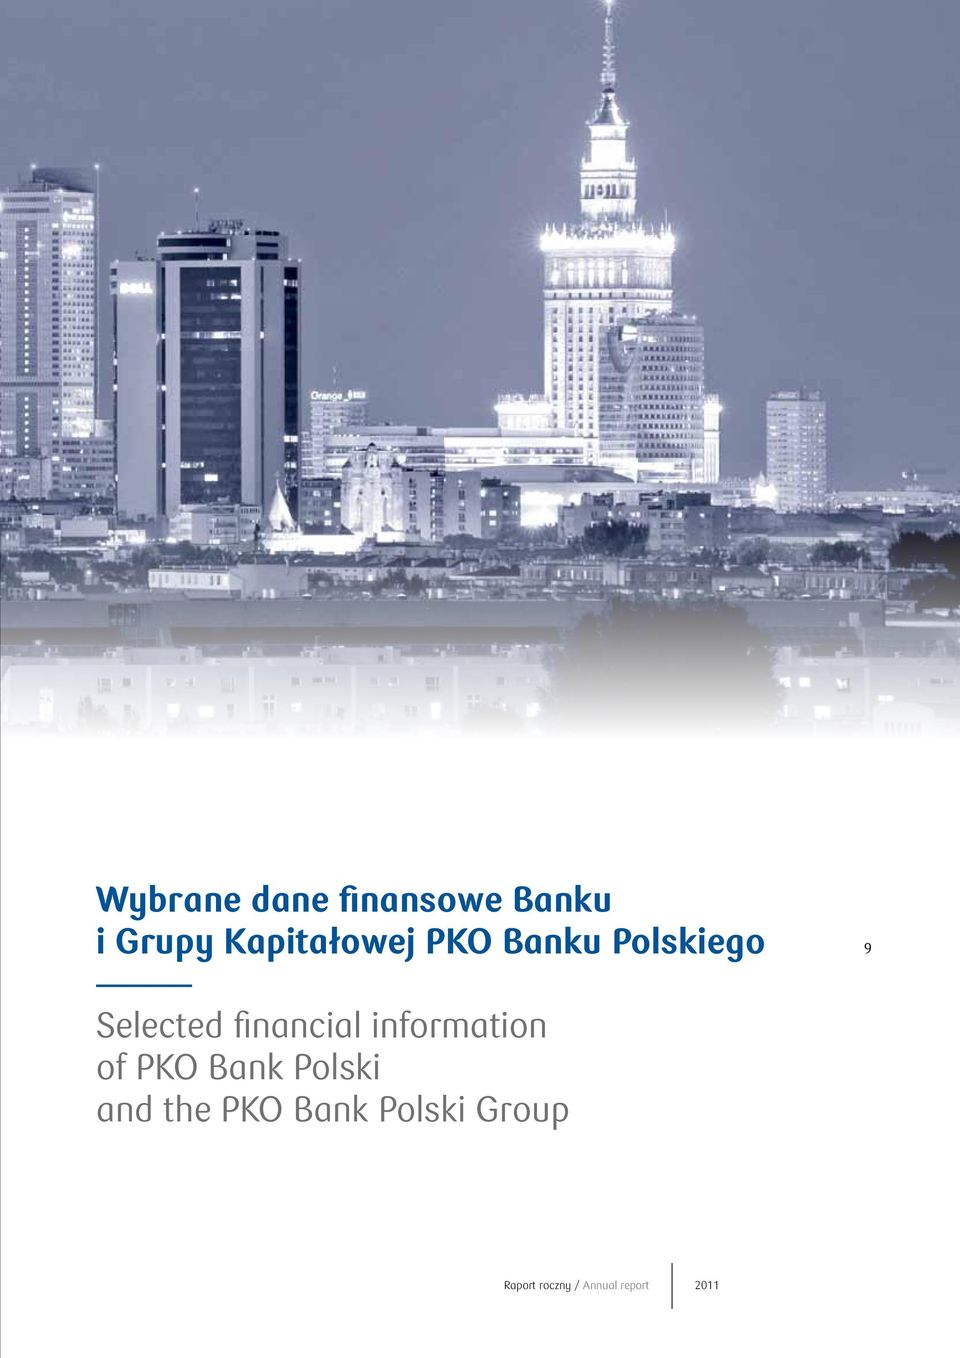 financial information of PKO Bank Polski and